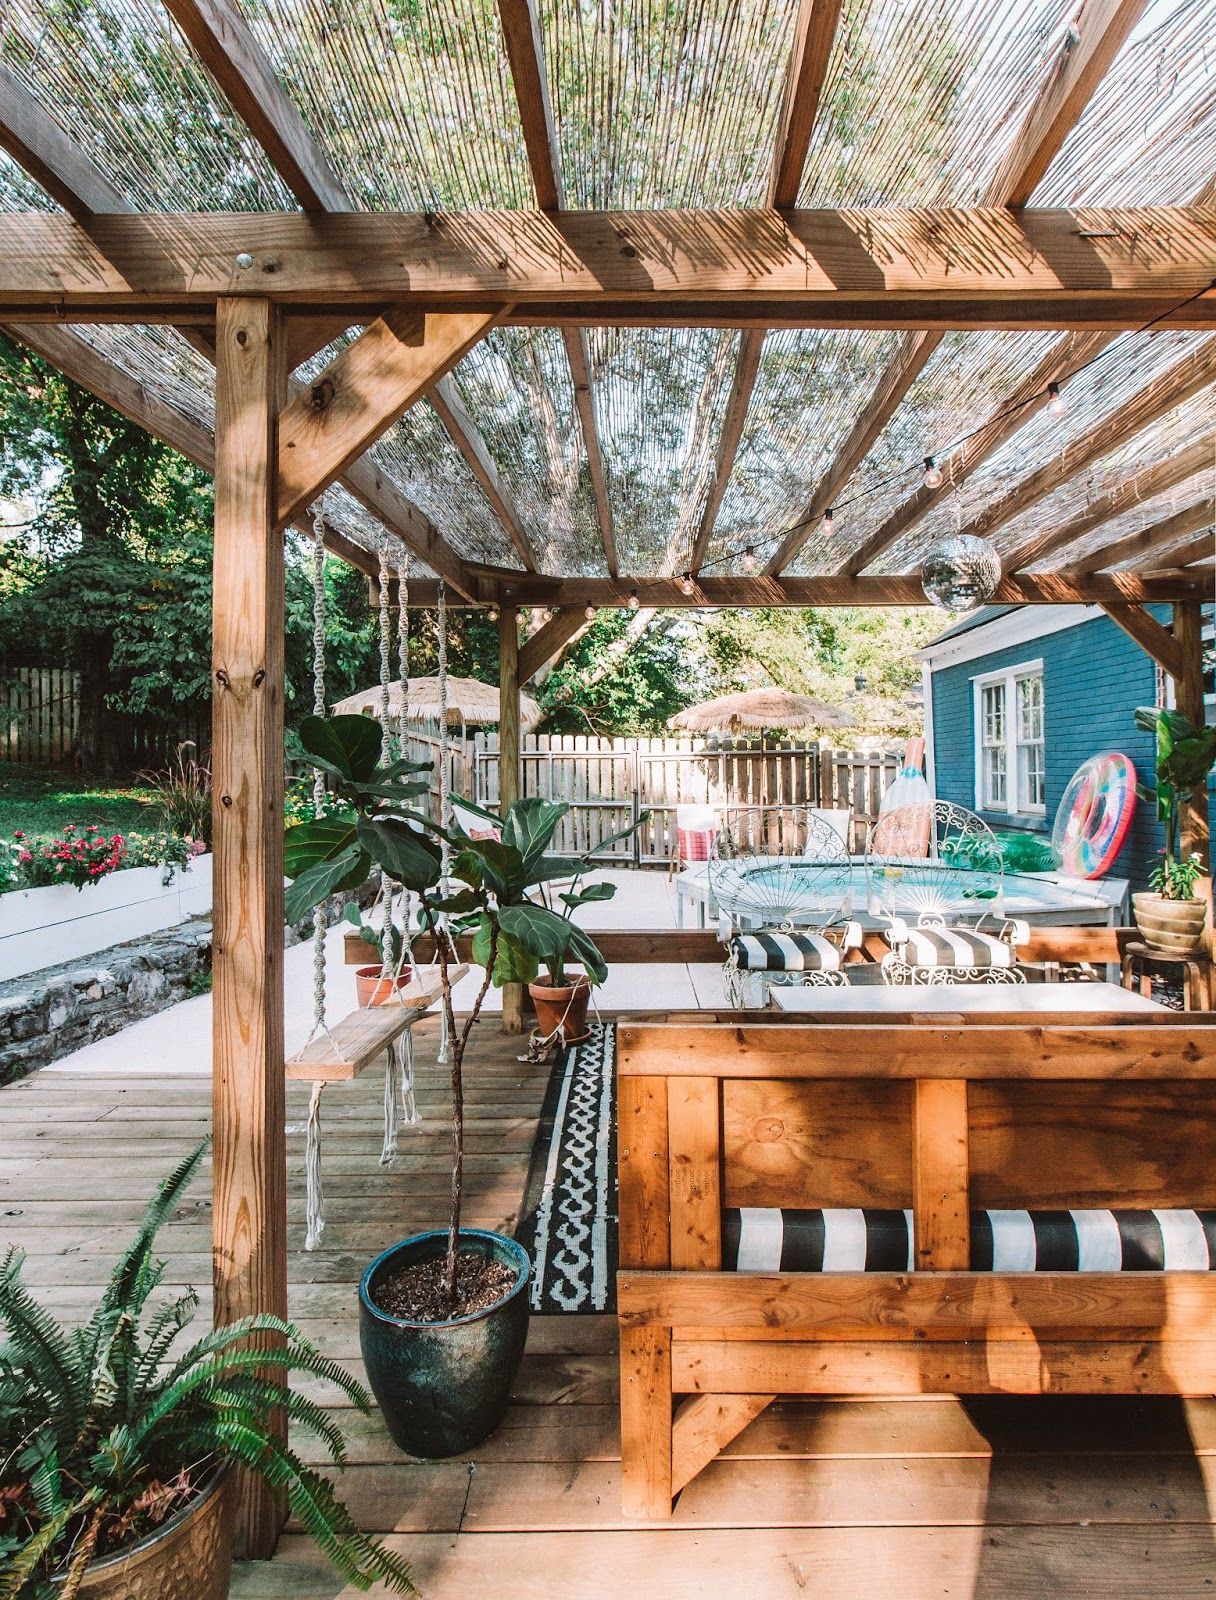 Home Tour: Our DIY Boho Backyard Oasis #backyardoasis